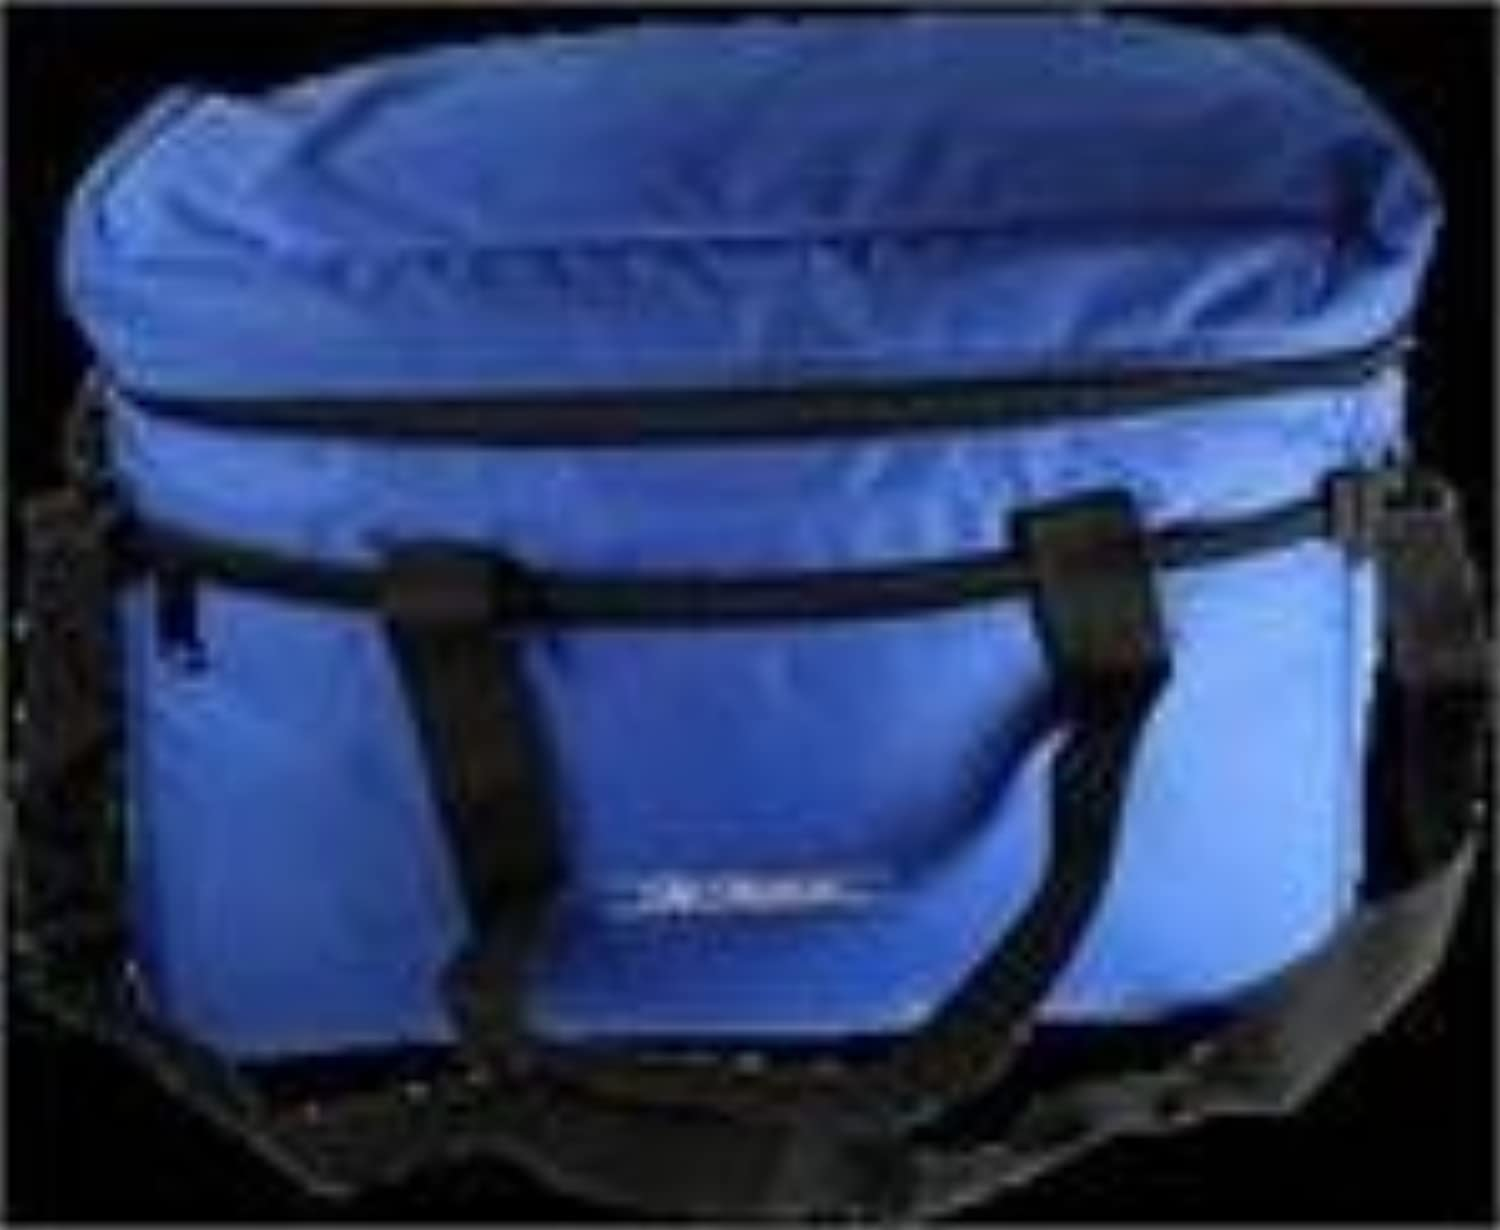 Chris Christensen Kool Bag for Dryers  bluee by Chris Christensen